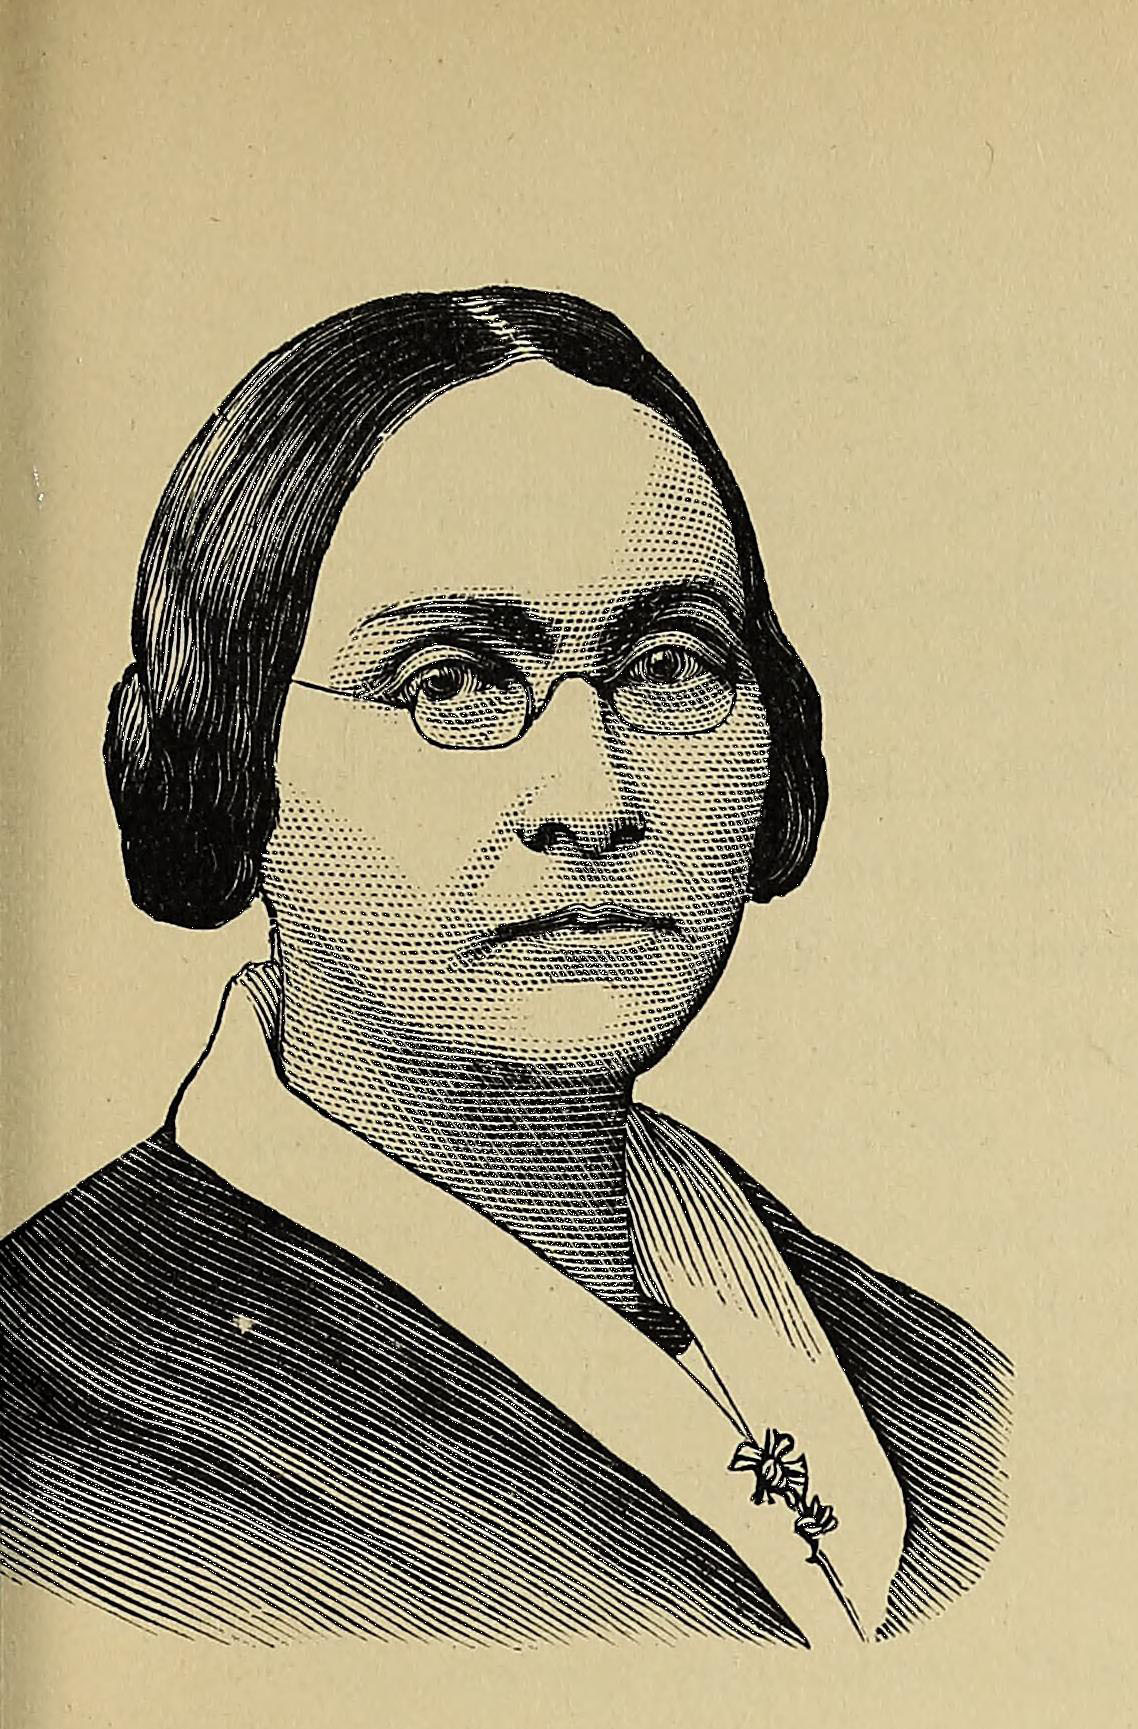 Black and white portrait of a person wearing glasses.